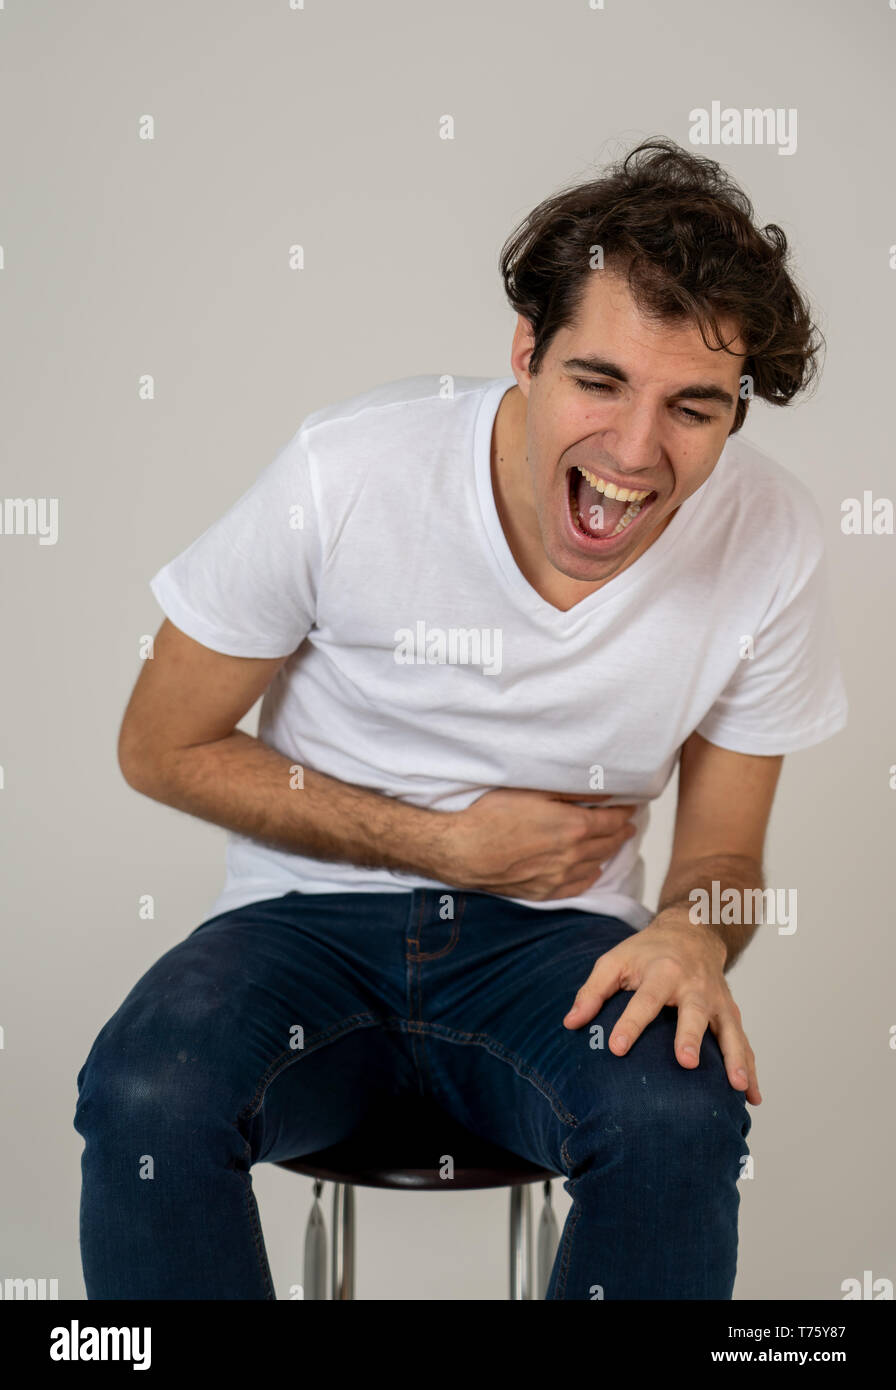 Portrait of young millennial funny male having fun bursting into laughing loudly after hearing humor anecdotes and jokes. Isolated against neutral bac - Stock Image